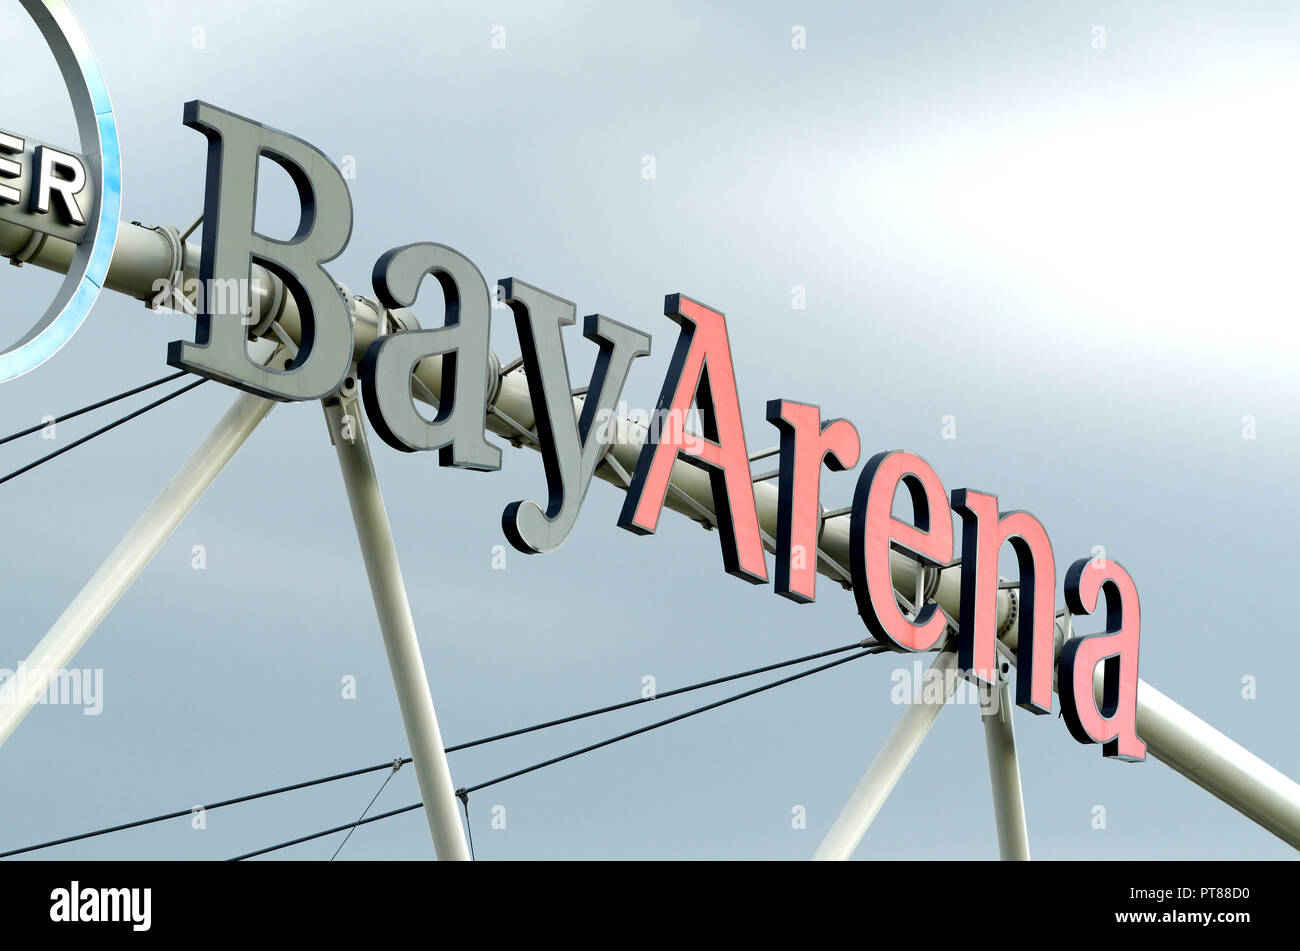 Leverkusen, Germany - September 15, 2018: BayArena football stadium - Stock Image